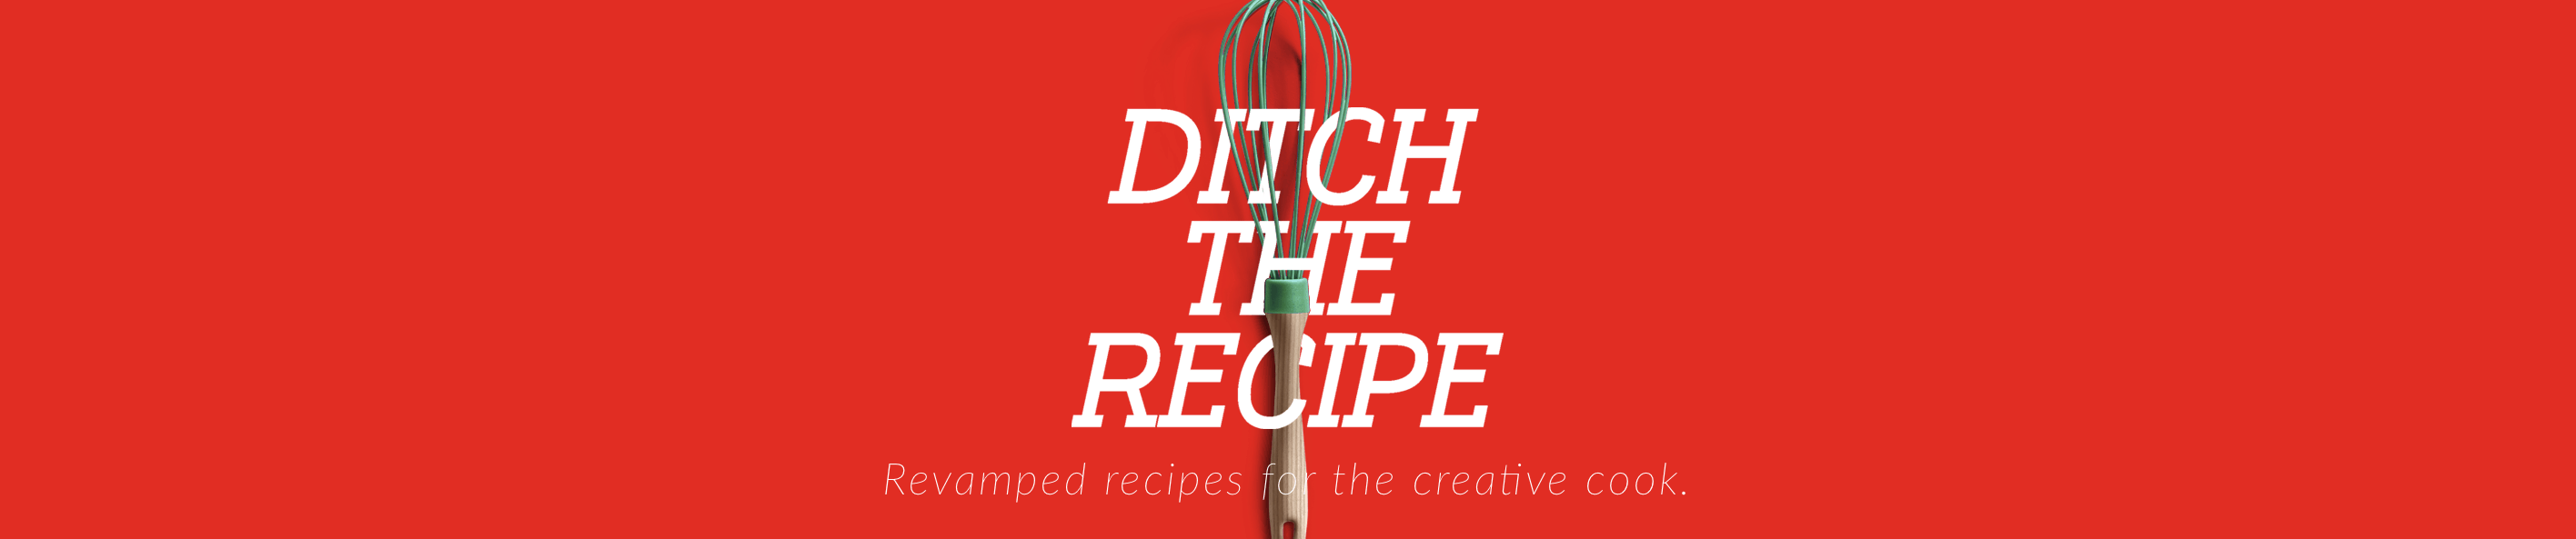 Ditch the Recipe